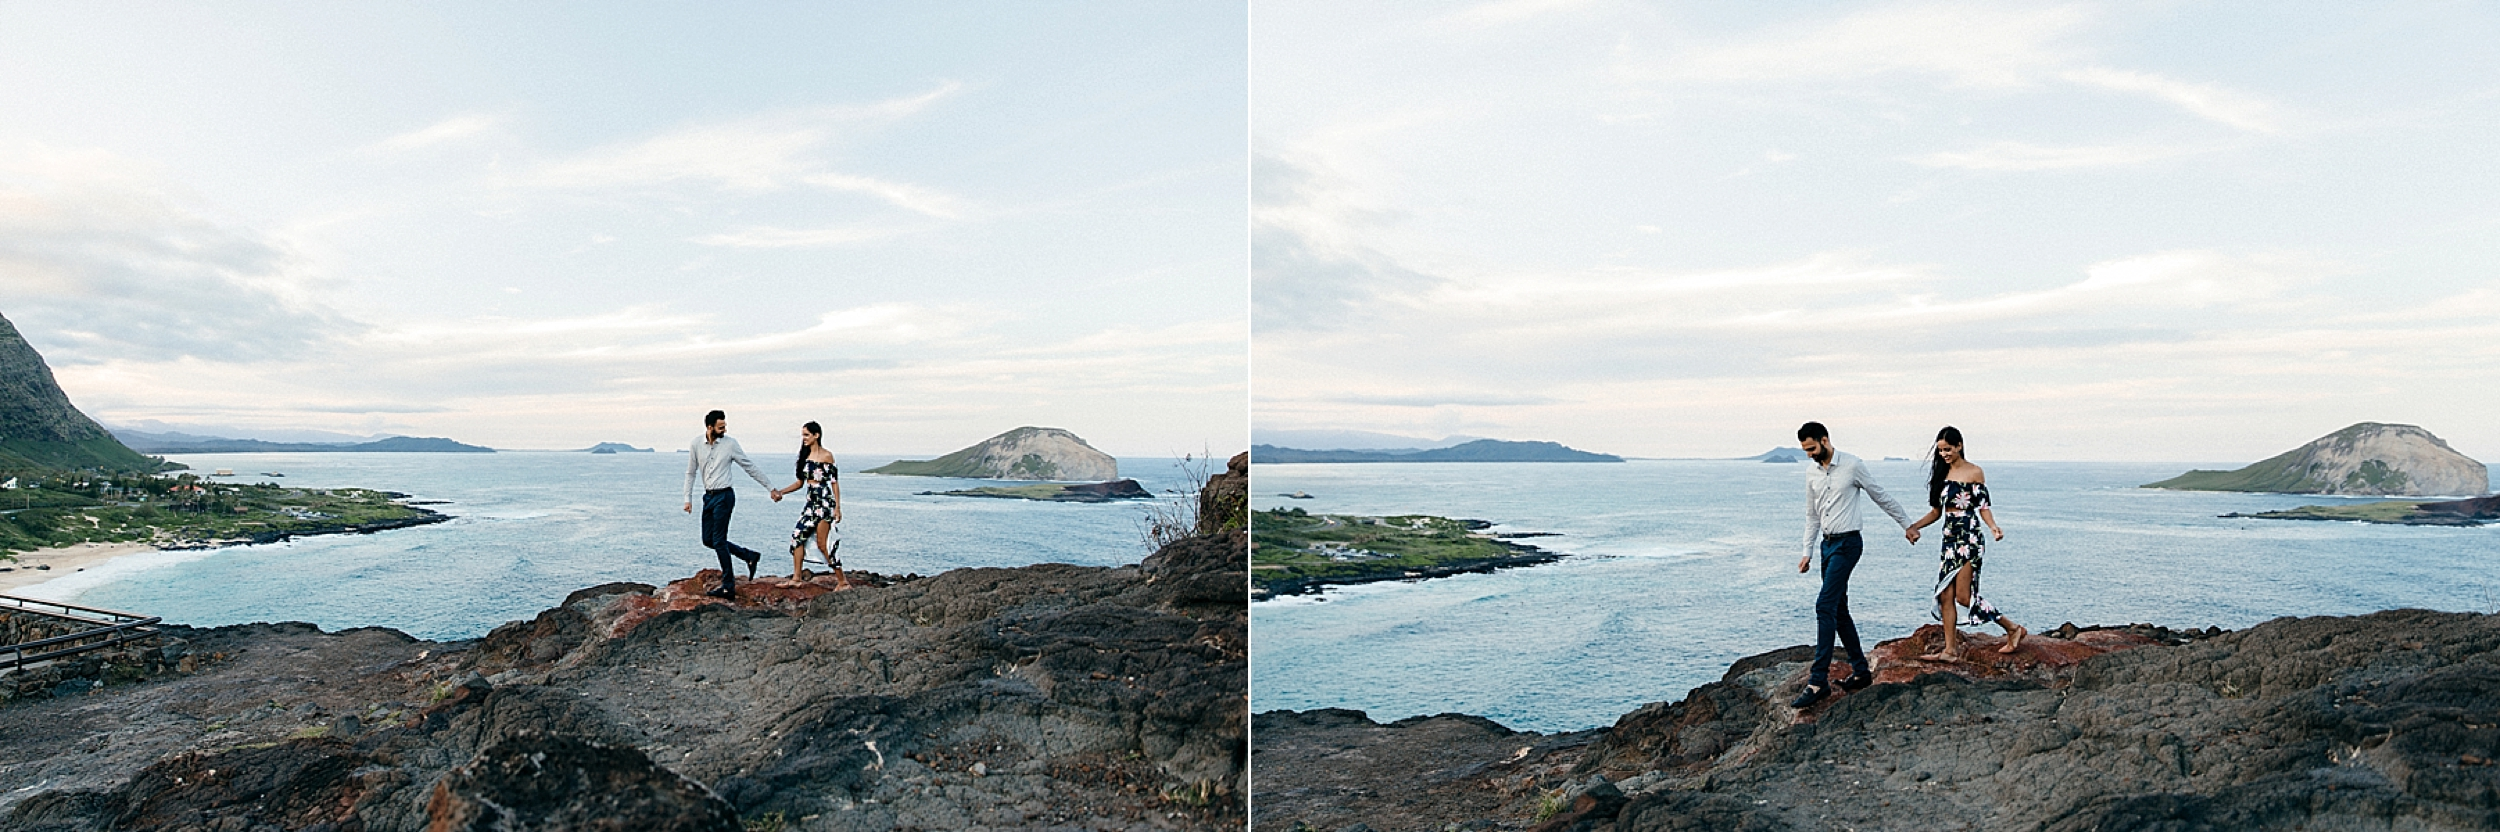 surprise-proposal-at-makapuu-beach-in-front-of-the-ocean-in-honolulu-hawaii-hidden-photographer_0020.jpg